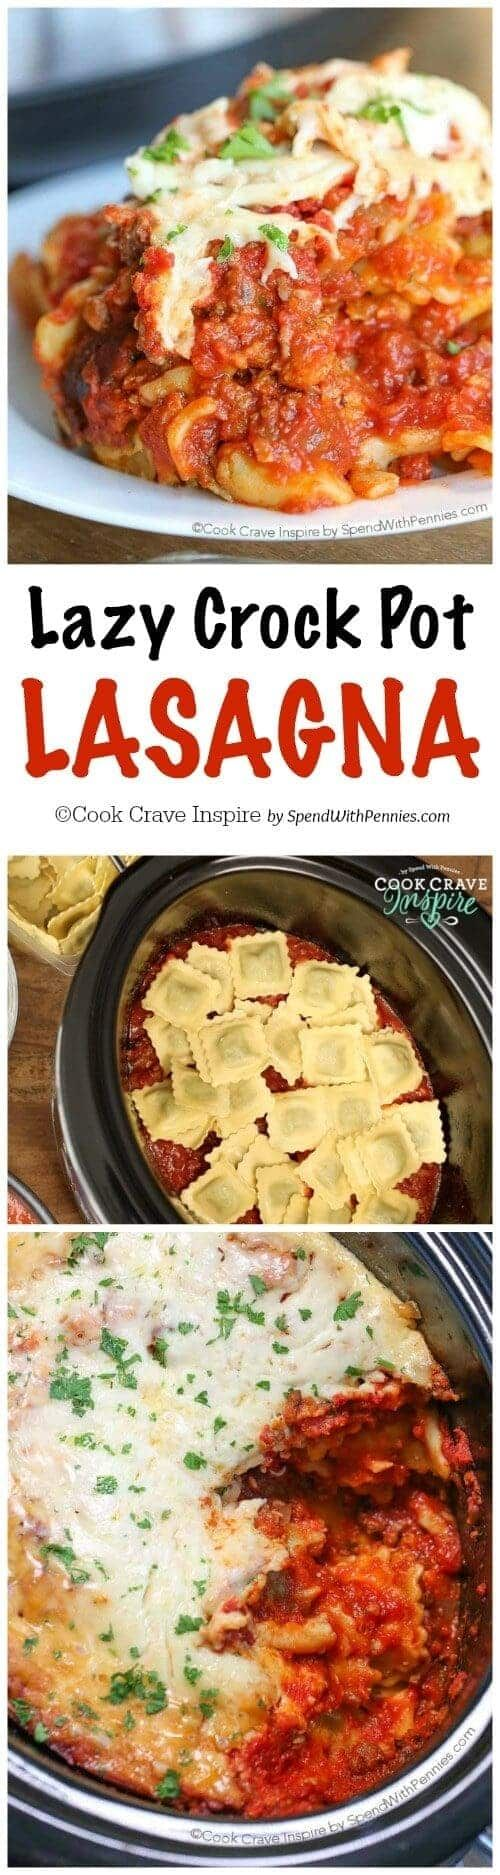 Lazy Crock Pot Lasagna {Easy To Make} - Spend With Pennies #crockpotlasagna